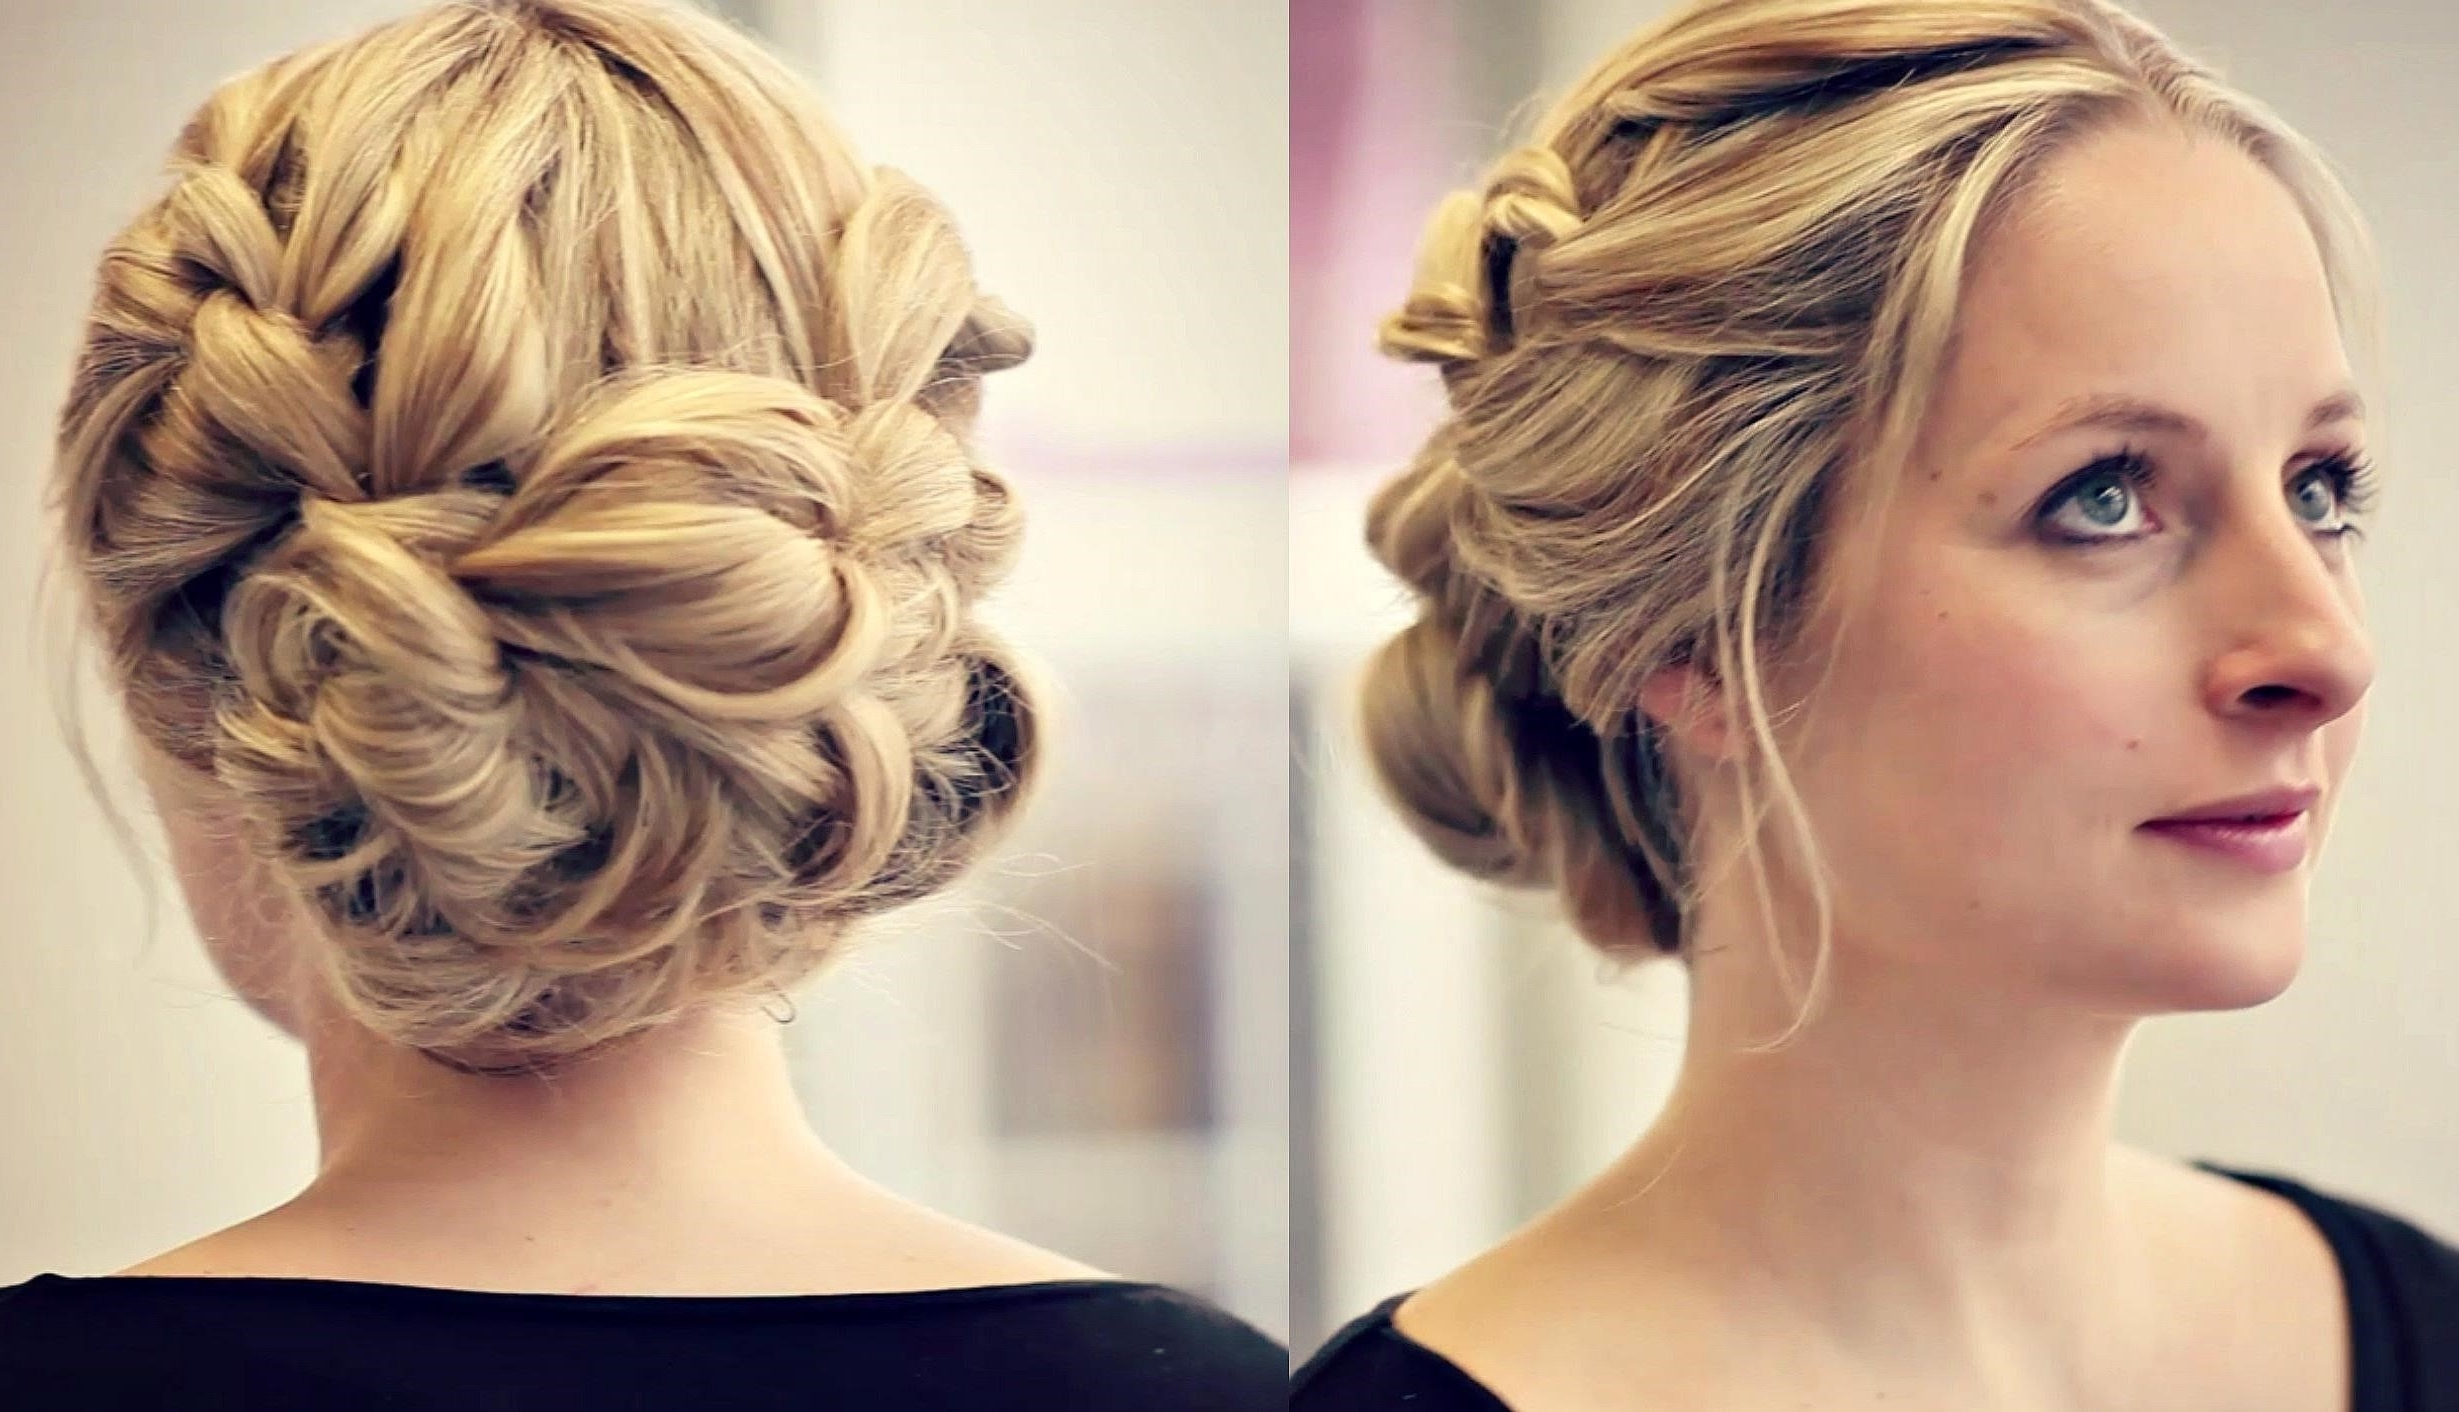 Mesmerizing Elegant Hairstyles For Brides With Additional Hairstyles Within Newest Elegant Wedding Hairstyles For Bridesmaids (Gallery 14 of 15)